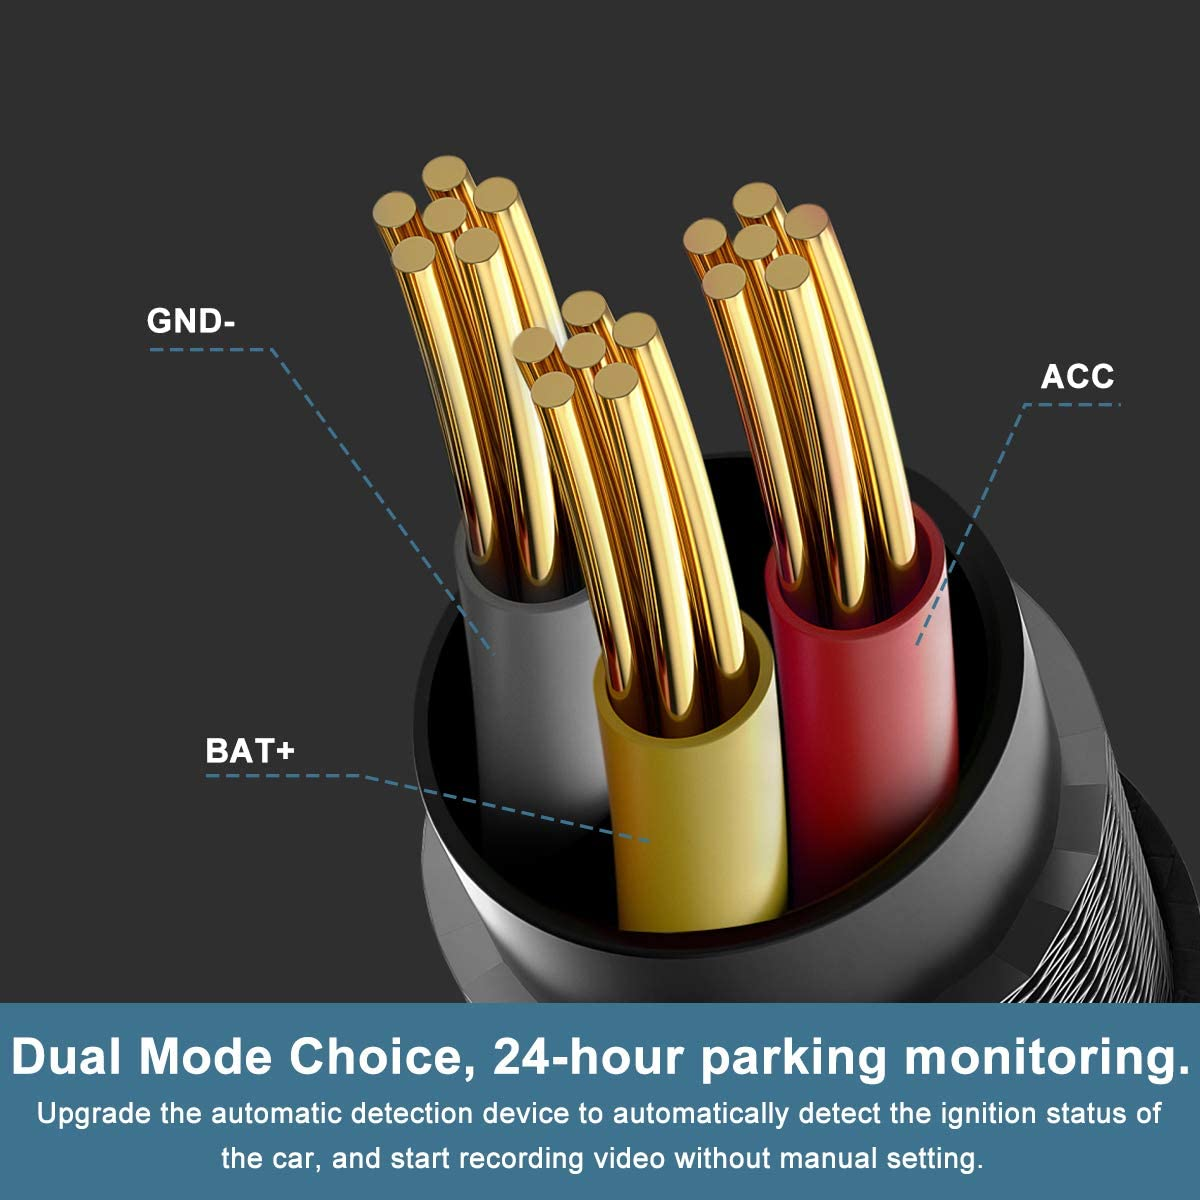 16Pin OBDII Adapter Hardwire Charger Cable 12-26V to 5V Mini USB Port OBD2 Power Cable for Dash Camera 24 Hours Surveillance//Acc Mode with Switch Button 【2 Pack】 OBD Power Cable